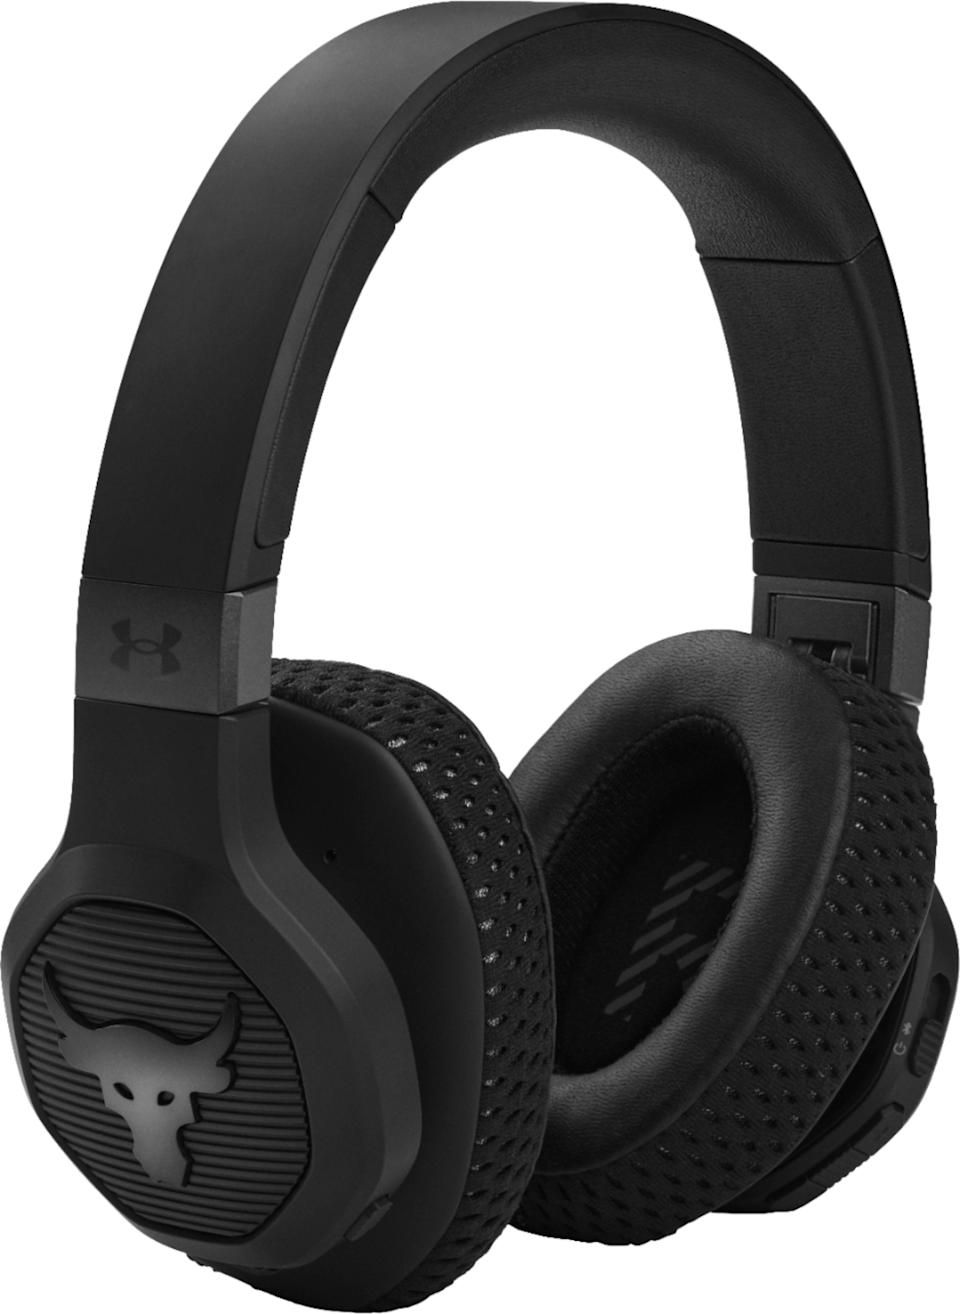 """<p><strong>JBL</strong></p><p>bestbuy.com</p><p><strong>$299.99</strong></p><p><a href=""""https://go.redirectingat.com?id=74968X1596630&url=https%3A%2F%2Fwww.bestbuy.com%2Fsite%2Fjbl-under-armour-project-rock-wireless-over-the-ear-headphones-black%2F6471429.p%3FskuId%3D6471429&sref=https%3A%2F%2Fwww.womenshealthmag.com%2Flife%2Fg33902097%2Fgifts-for-teen-boys%2F"""" rel=""""nofollow noopener"""" target=""""_blank"""" data-ylk=""""slk:Shop Now"""" class=""""link rapid-noclick-resp"""">Shop Now</a></p><p>Finely tuned by Dwayne 'The Rock"""" Johnson as part of his Project Rock line with Under Armor, these training headphones are designed to allow your teen to focus on his workout.</p>"""